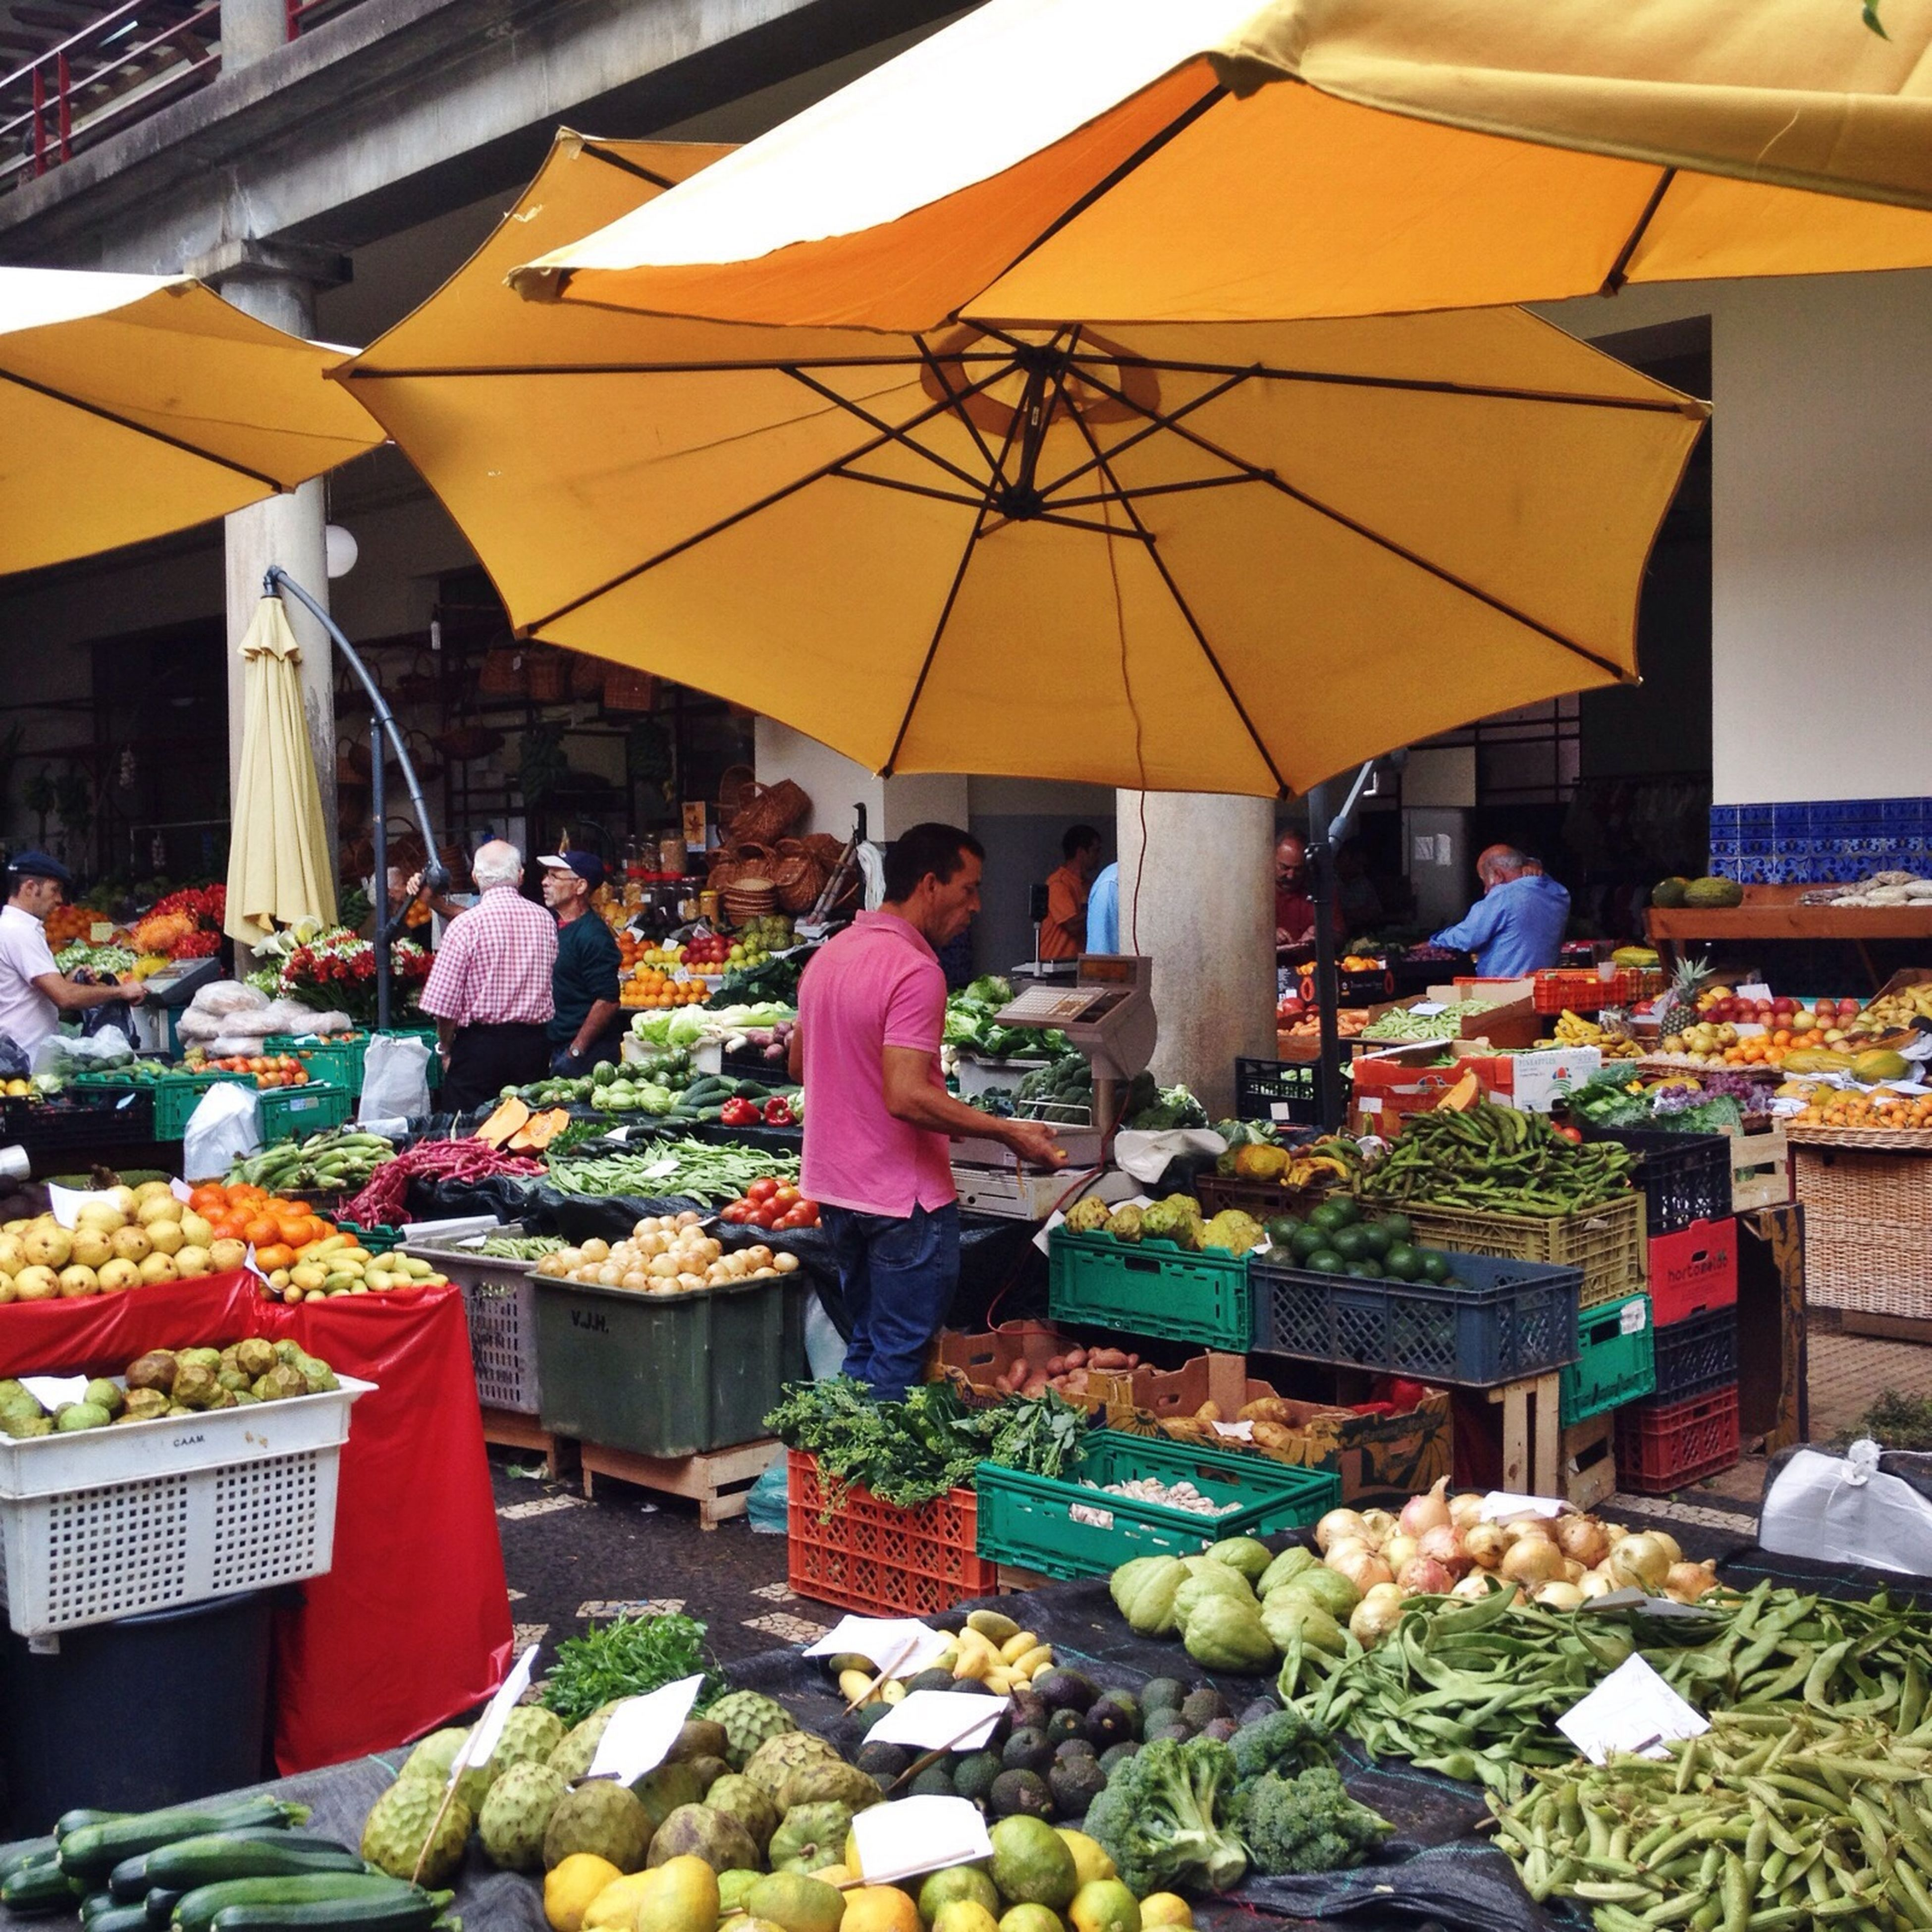 market, retail, for sale, market stall, abundance, food, men, choice, large group of objects, food and drink, selling, variation, small business, sale, street market, store, consumerism, freshness, healthy eating